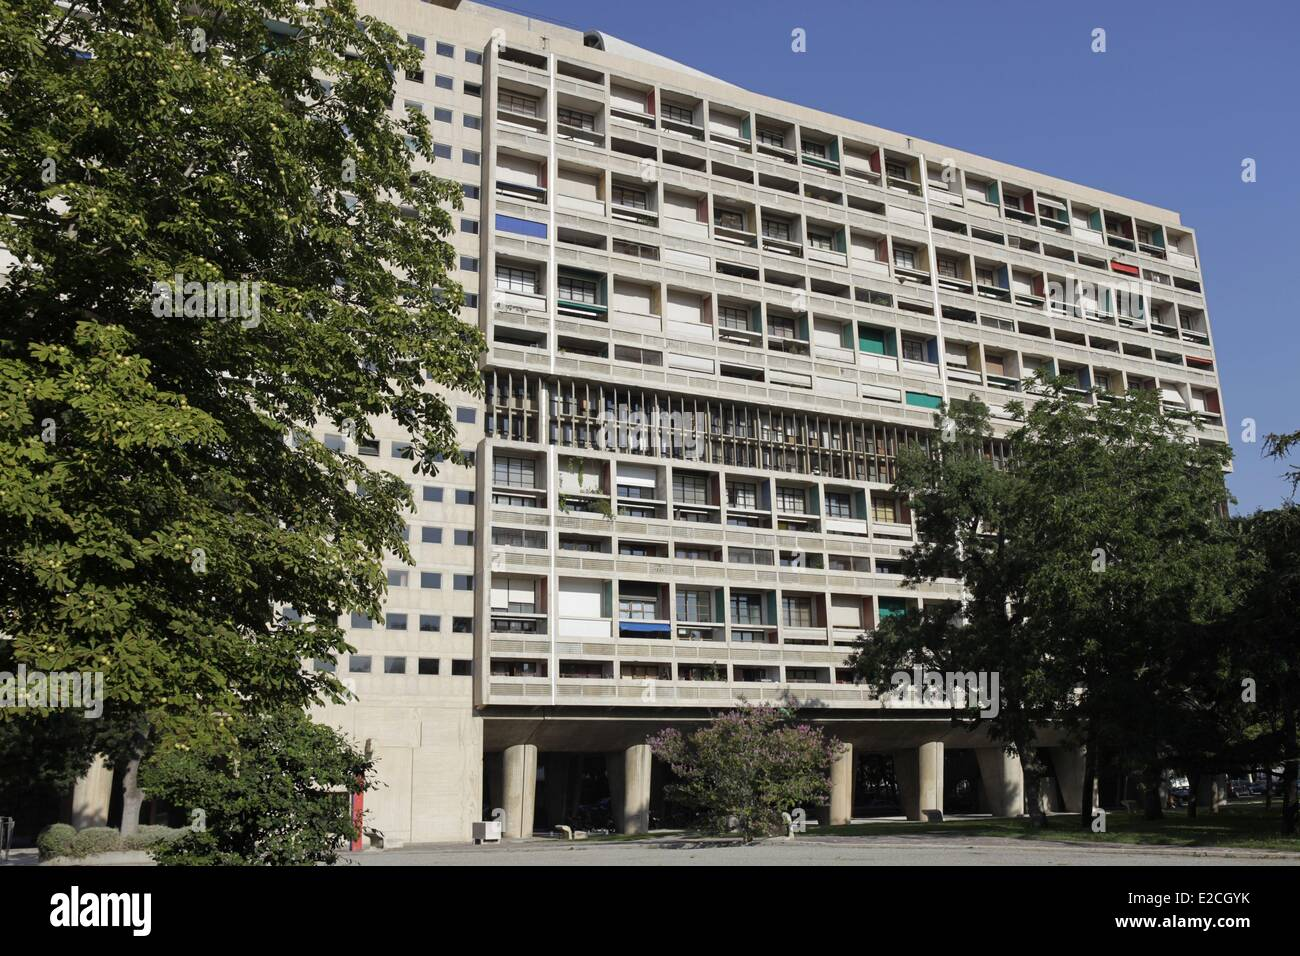 France, Bouches du Rhone, Marseille, Radiant Cite residential building by architect Le Corbusier - Stock Image